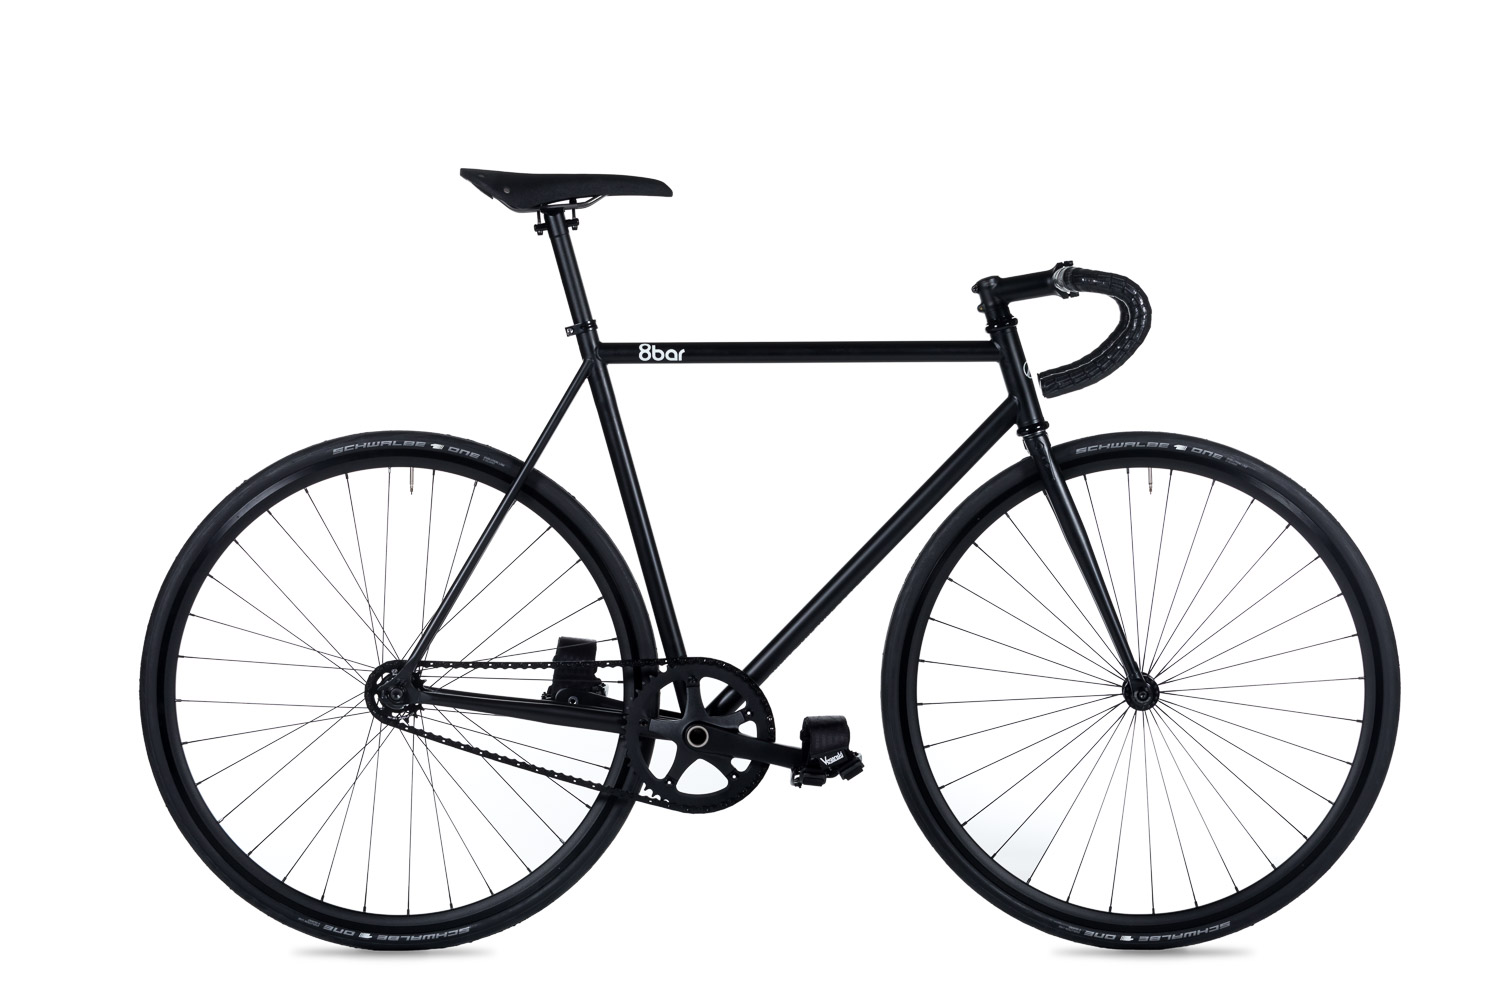 8bar-complete-bike-fhain-steel-pro-crit-black-studio-fixed-gear-fixie-lr-1